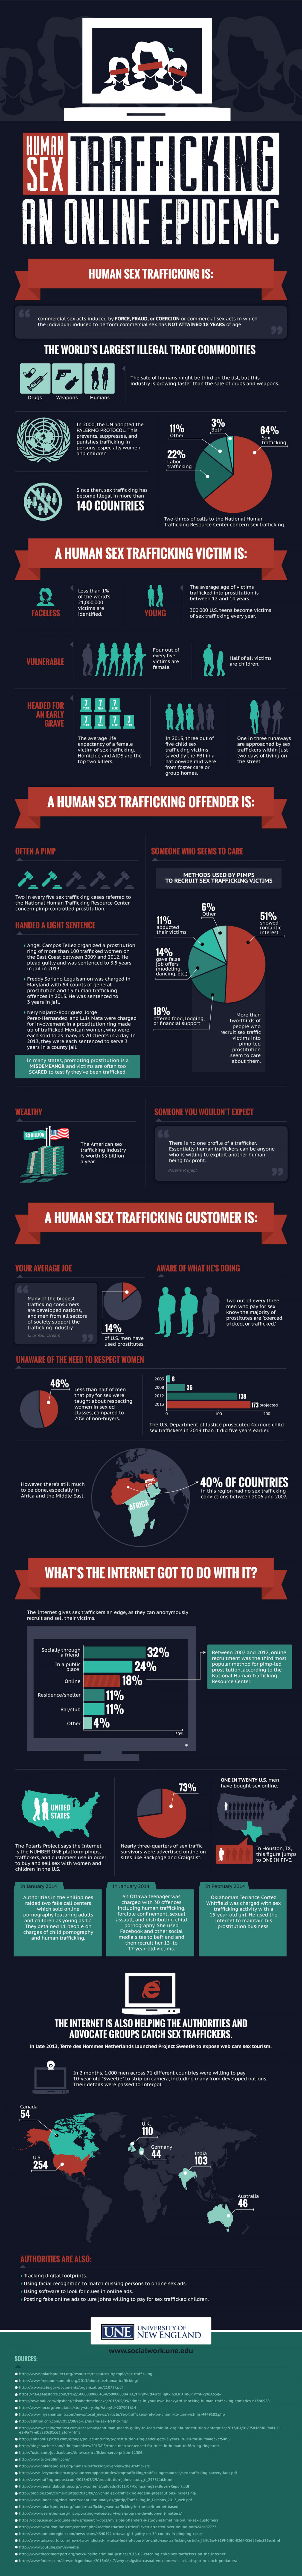 Human Sex Trafficking: An Online Epidemic Infographic